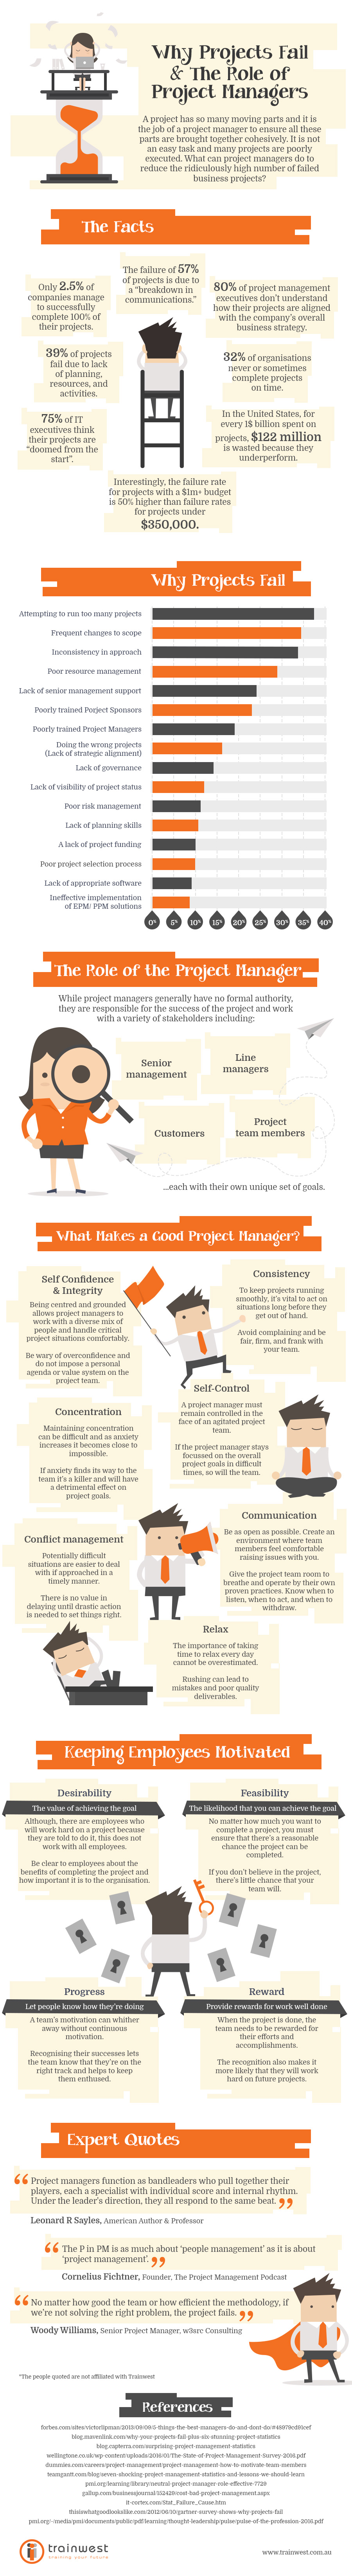 why good projects fail Business analysts are the link between the business stakeholders, an organization's goals, and the it teams responsible for software project success as such, bas can have a significant impact on whether software projects succeed or fail according to recent research by project.